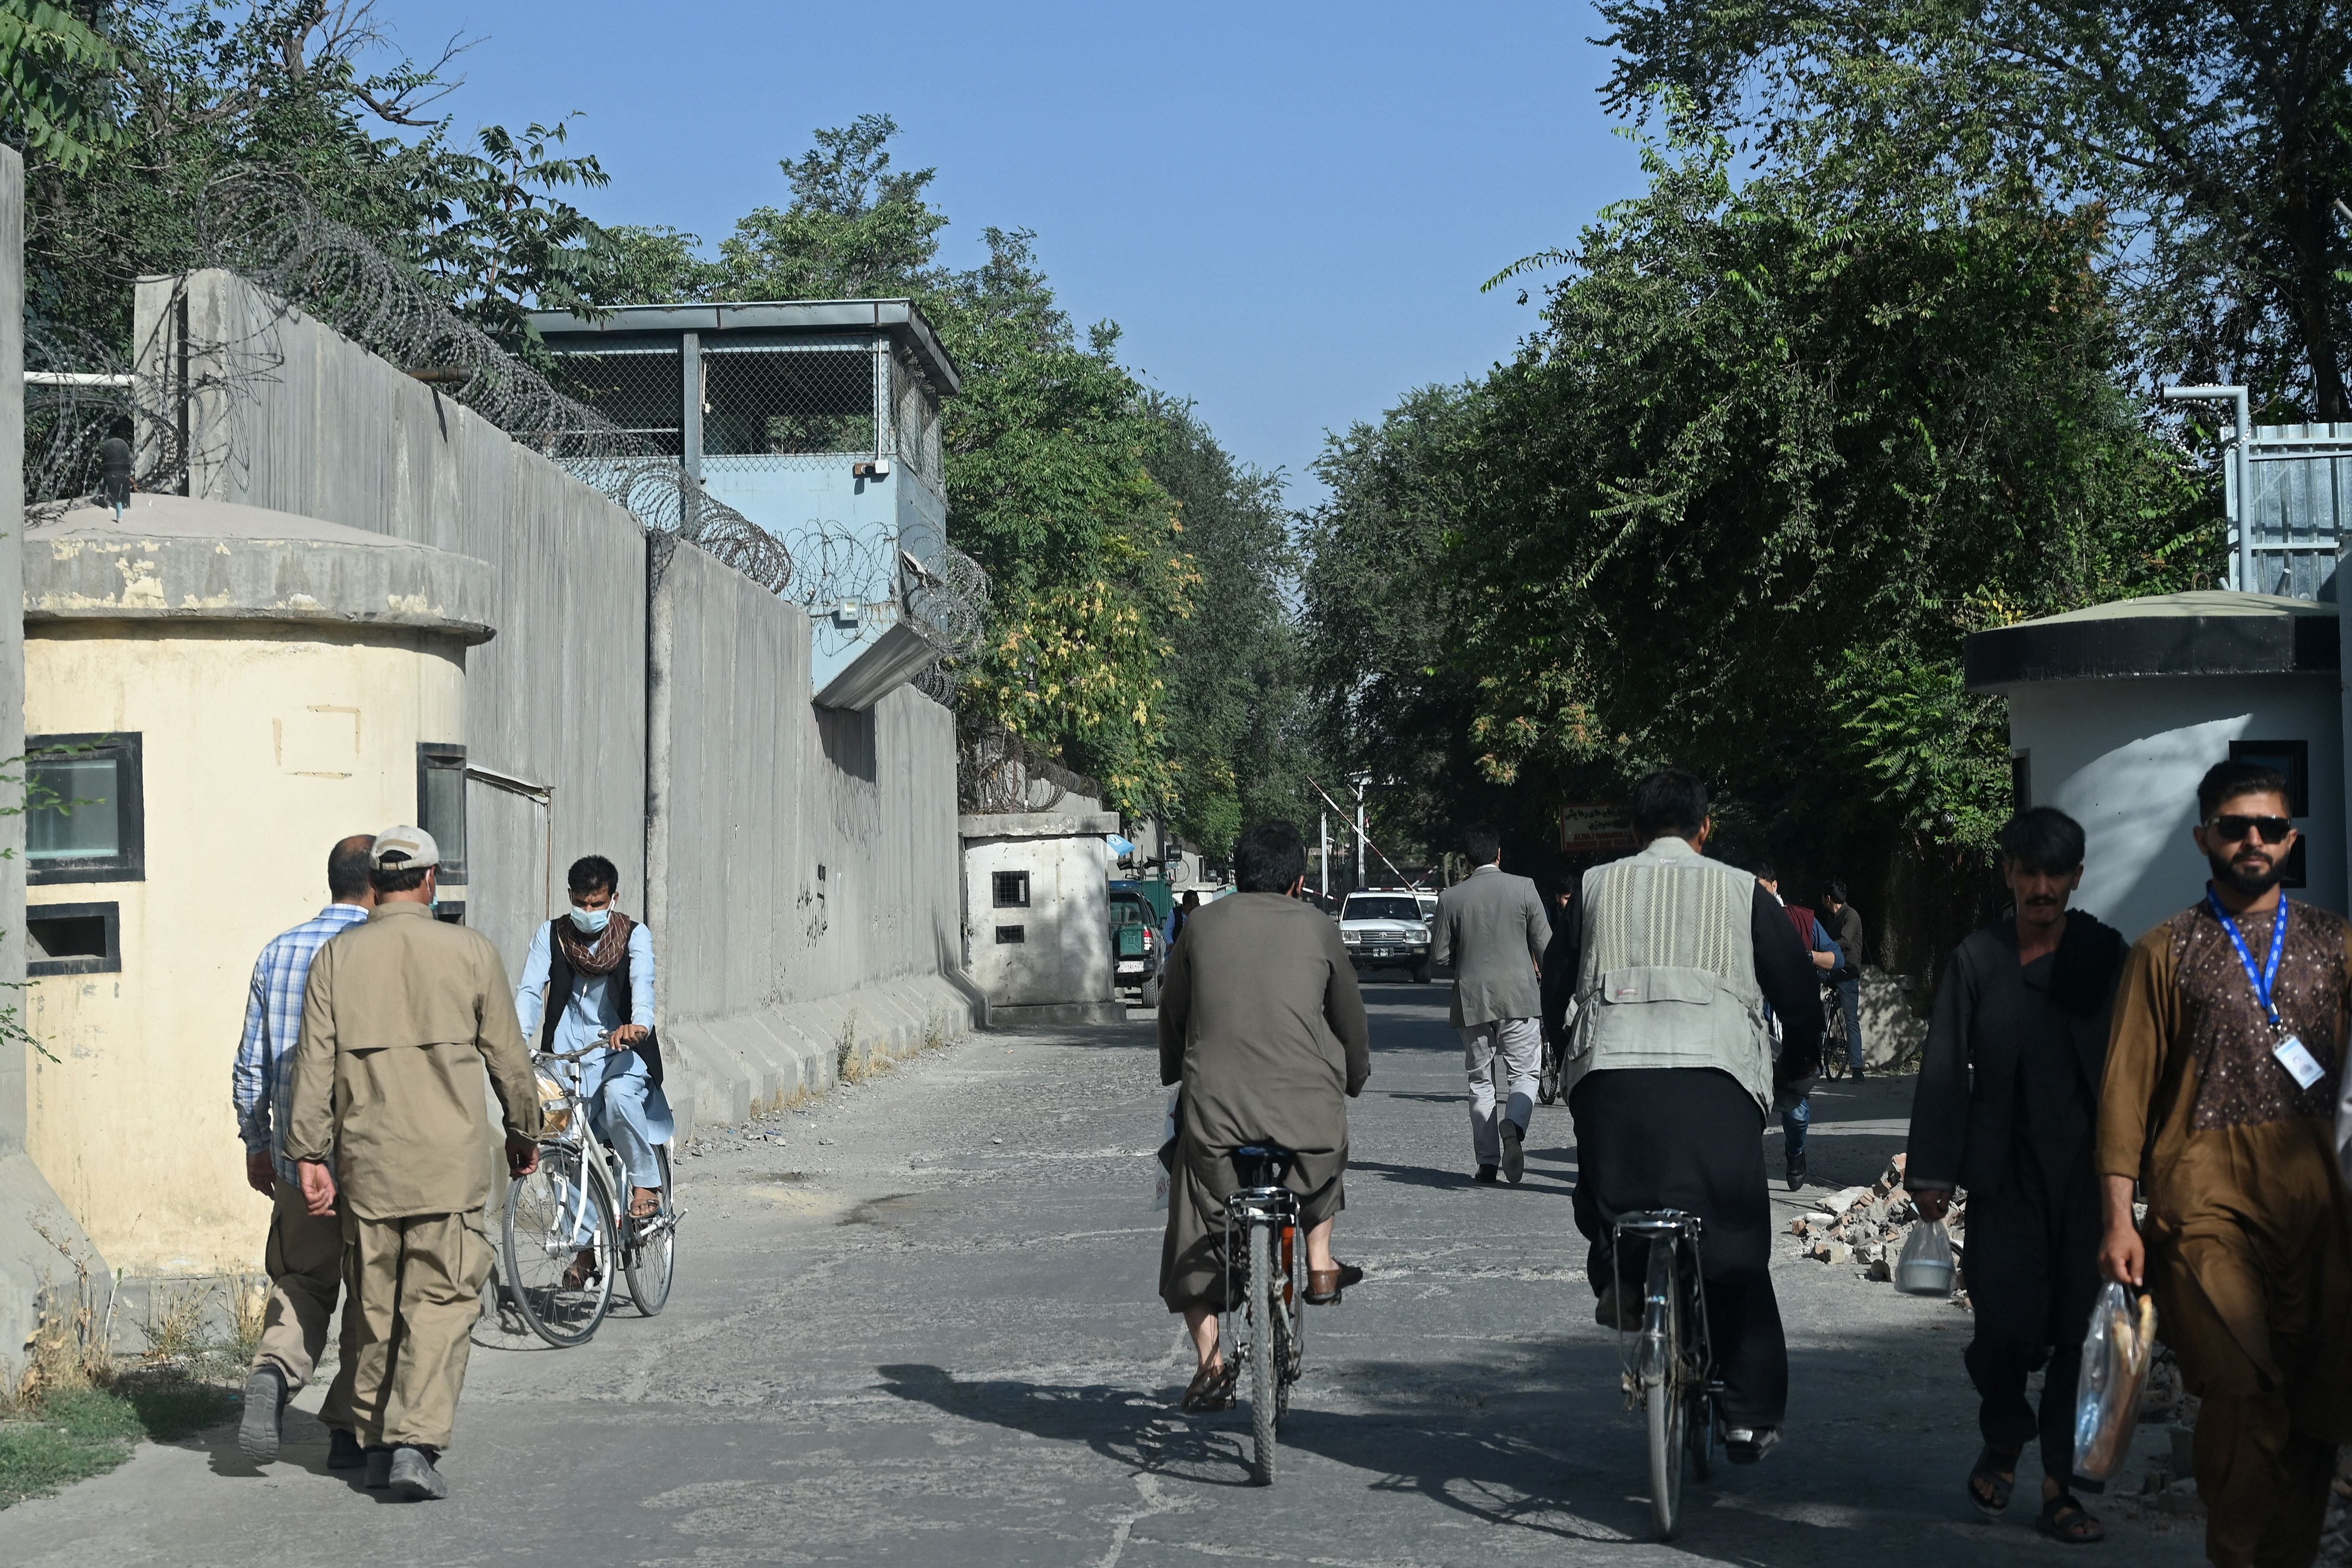 Afghan men walk through a sreet in the Green Zone of Kabul on Sunday.